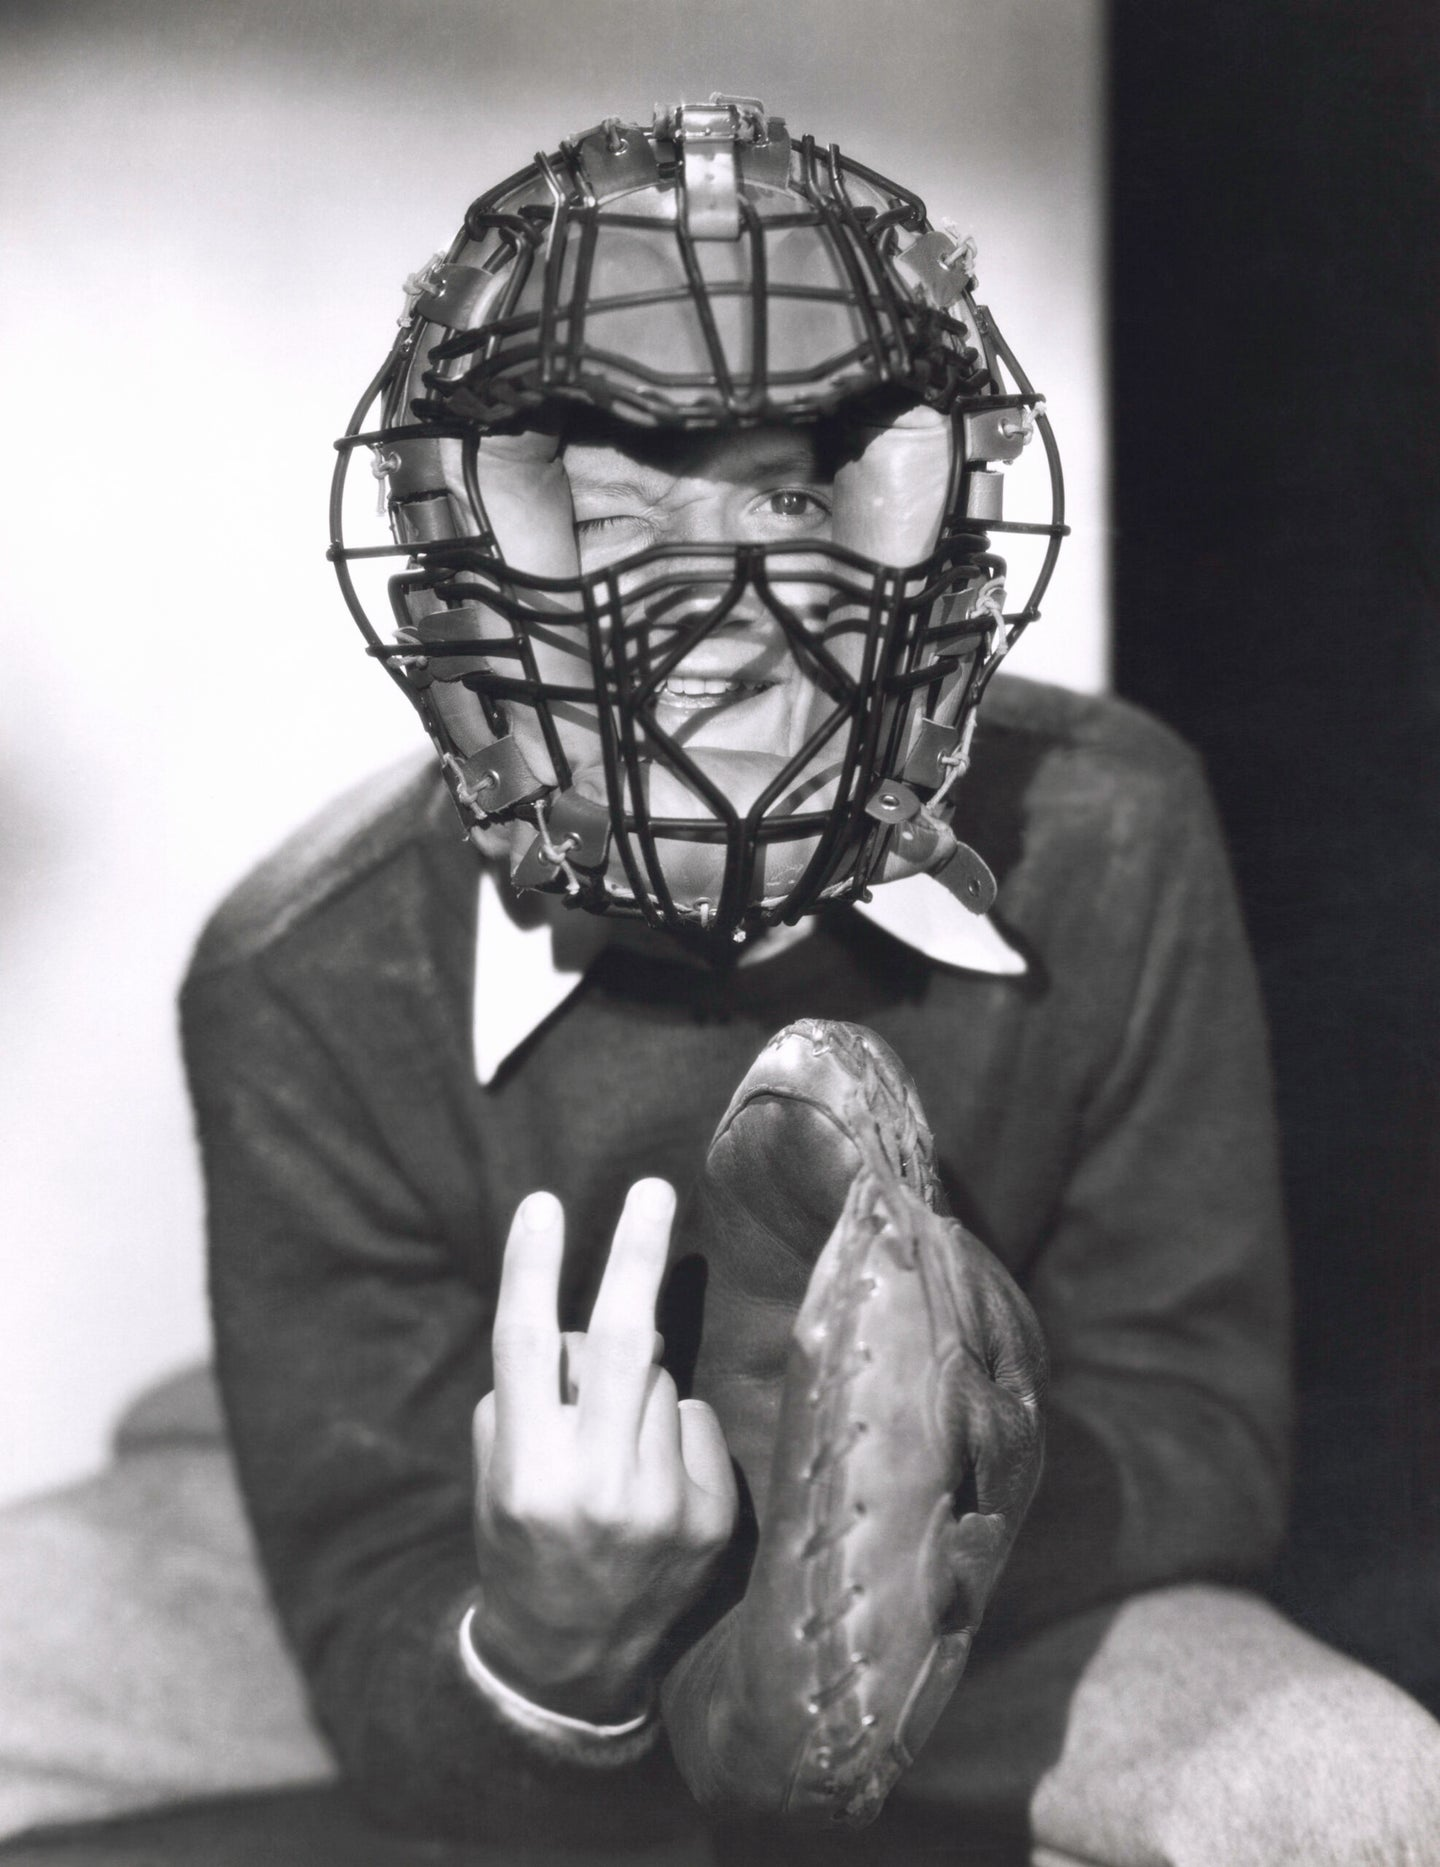 An old-school catcher throwing up a pitch sign